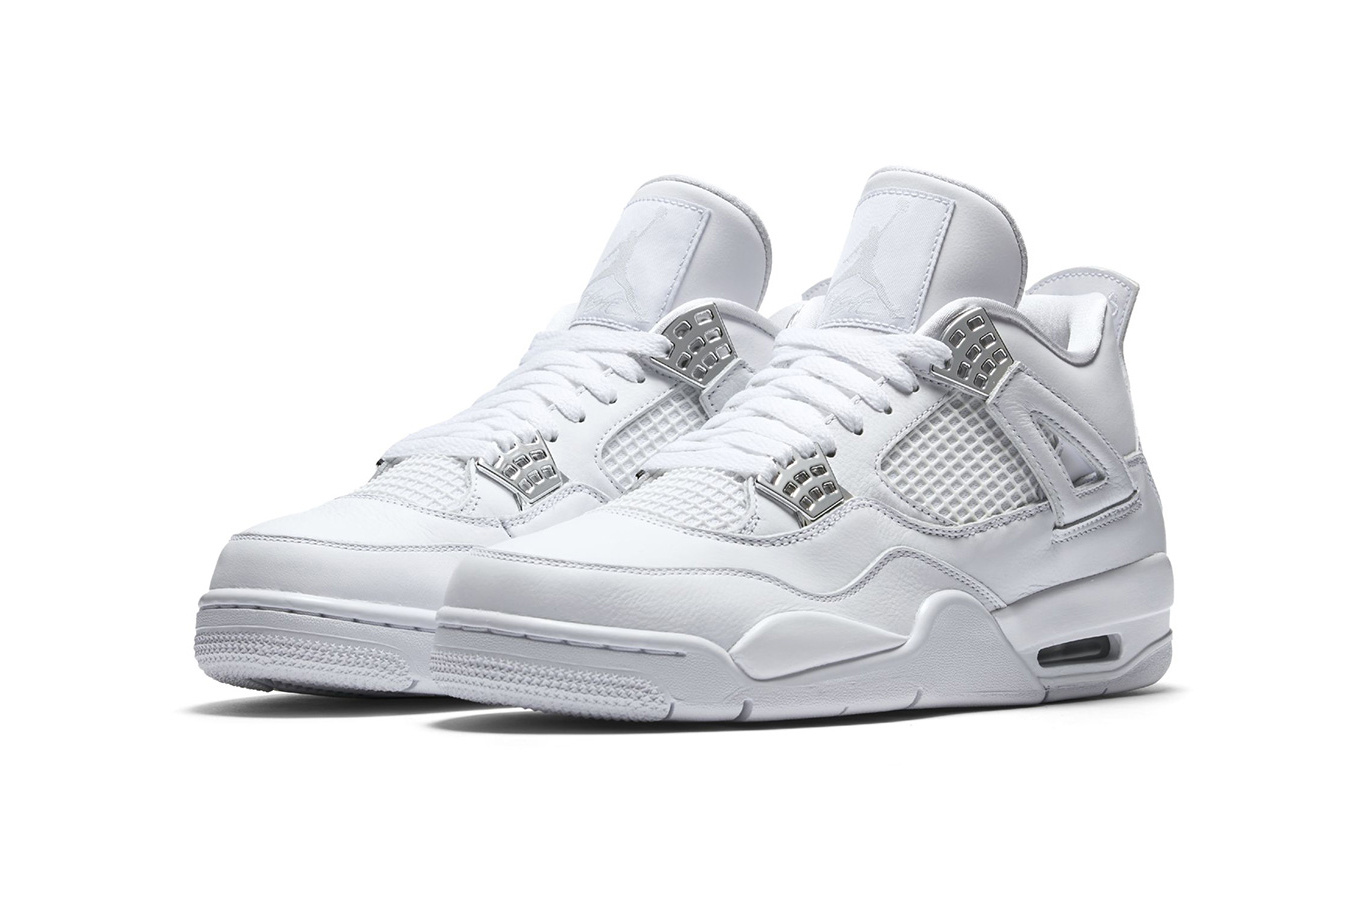 """Air Jordan 4 """"Pure Money"""" Retro detailed images will be released this year"""